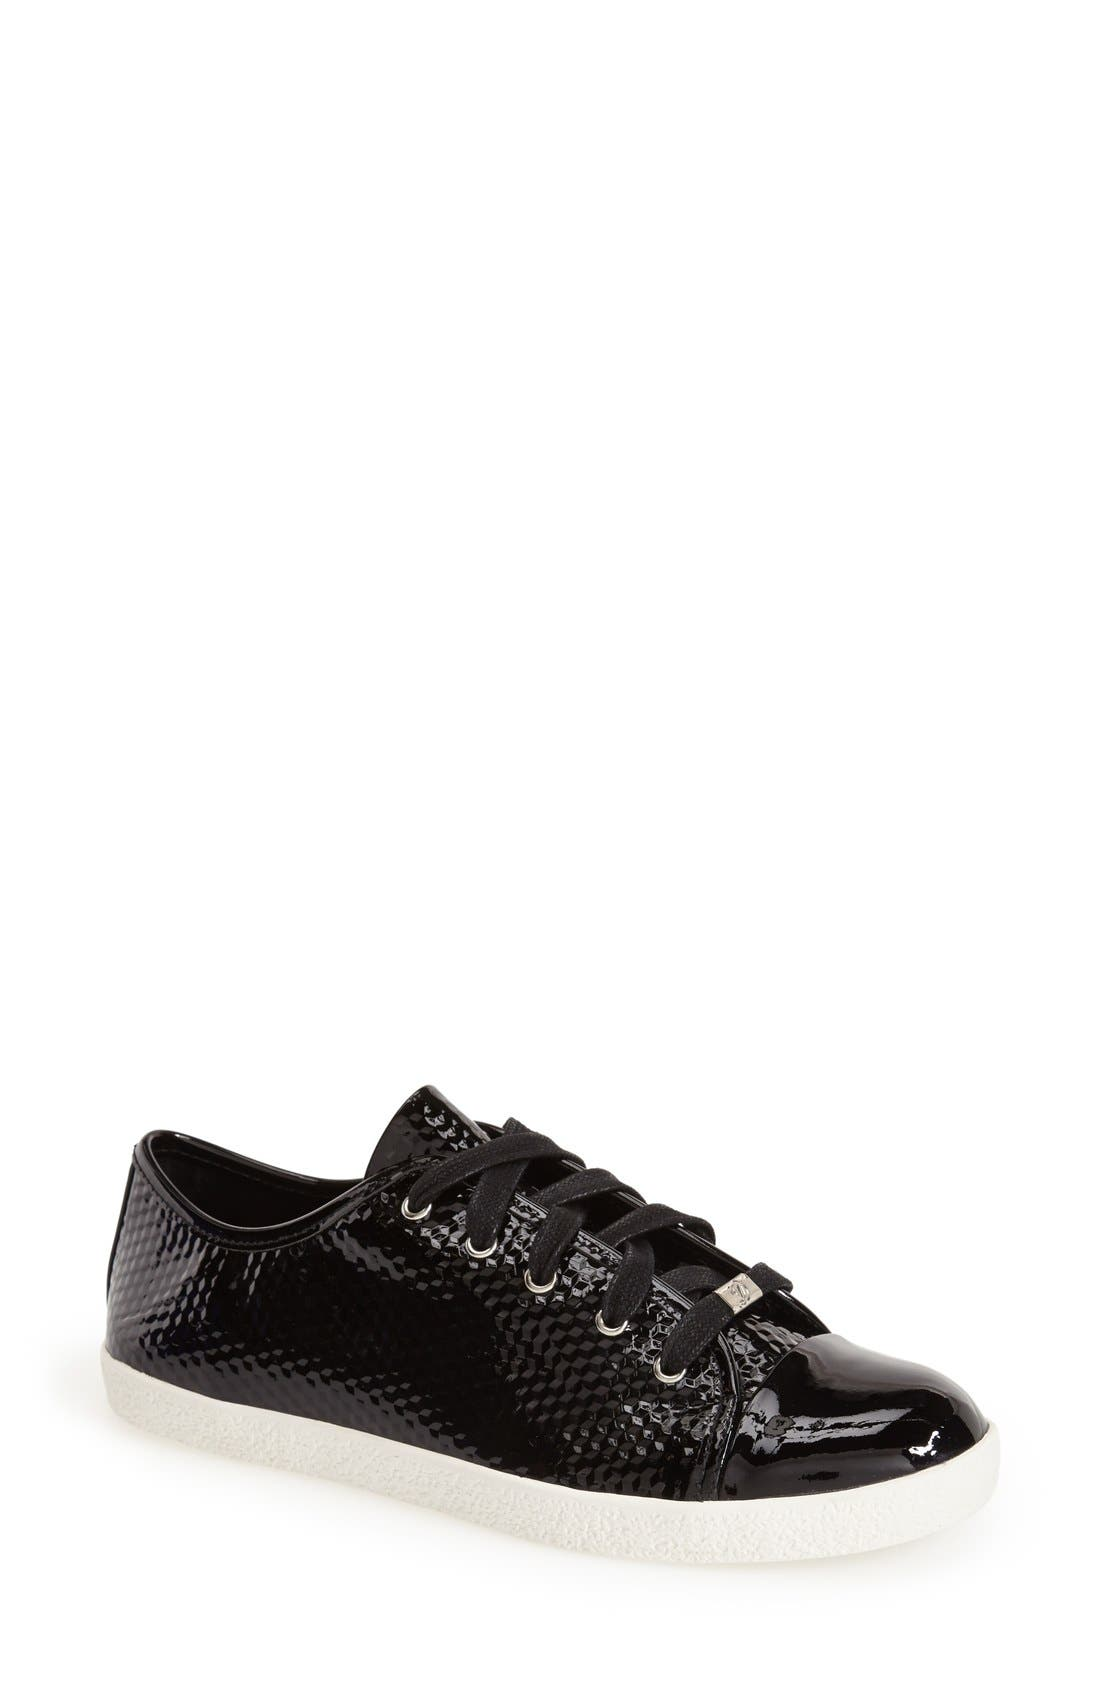 Alternate Image 1 Selected - Delman 'Magie' Low Top Sneaker (Women)